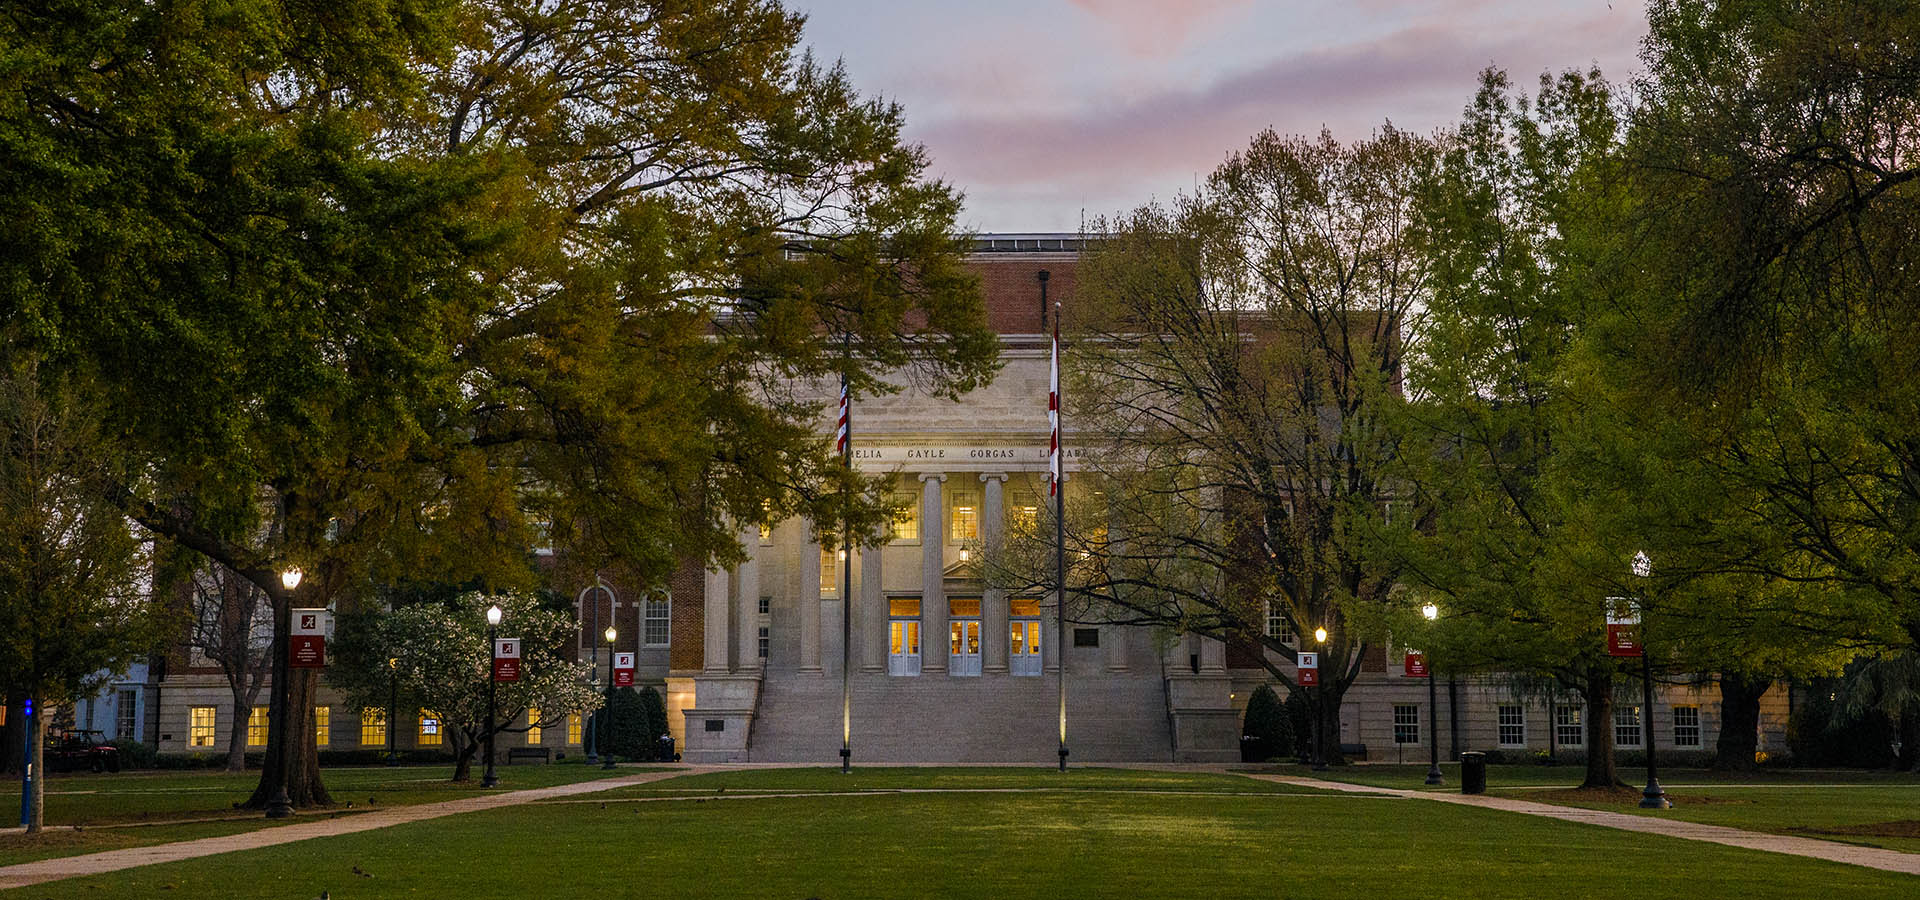 Gorgas library at sunset